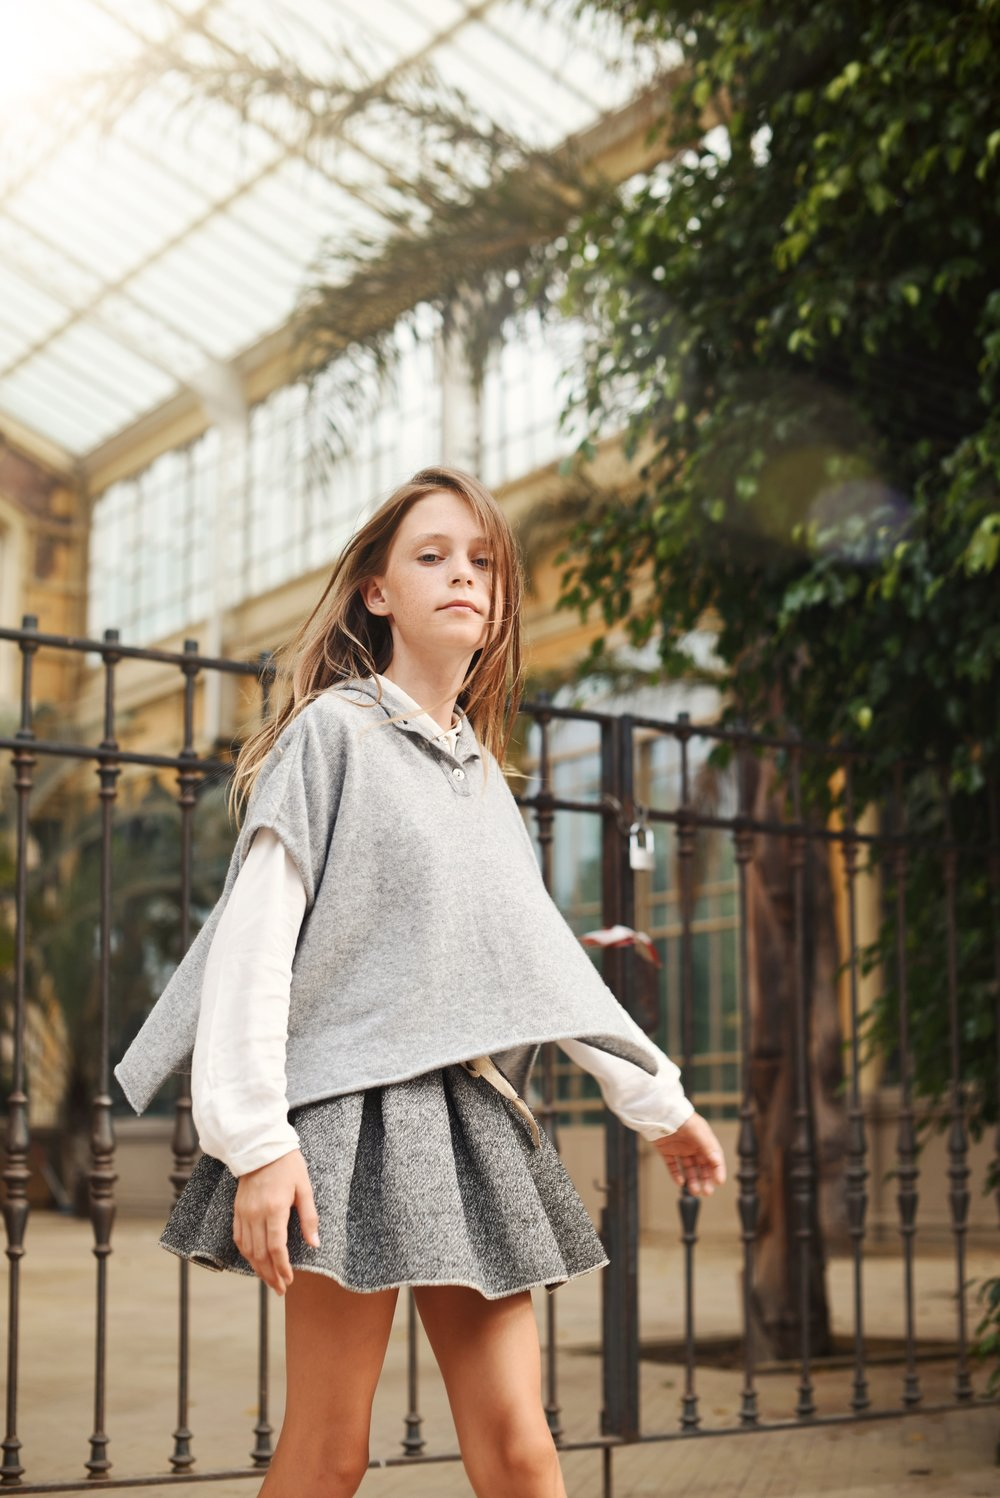 Enfant+Street+Style+by+Gina+Kim+Photography-11.jpeg